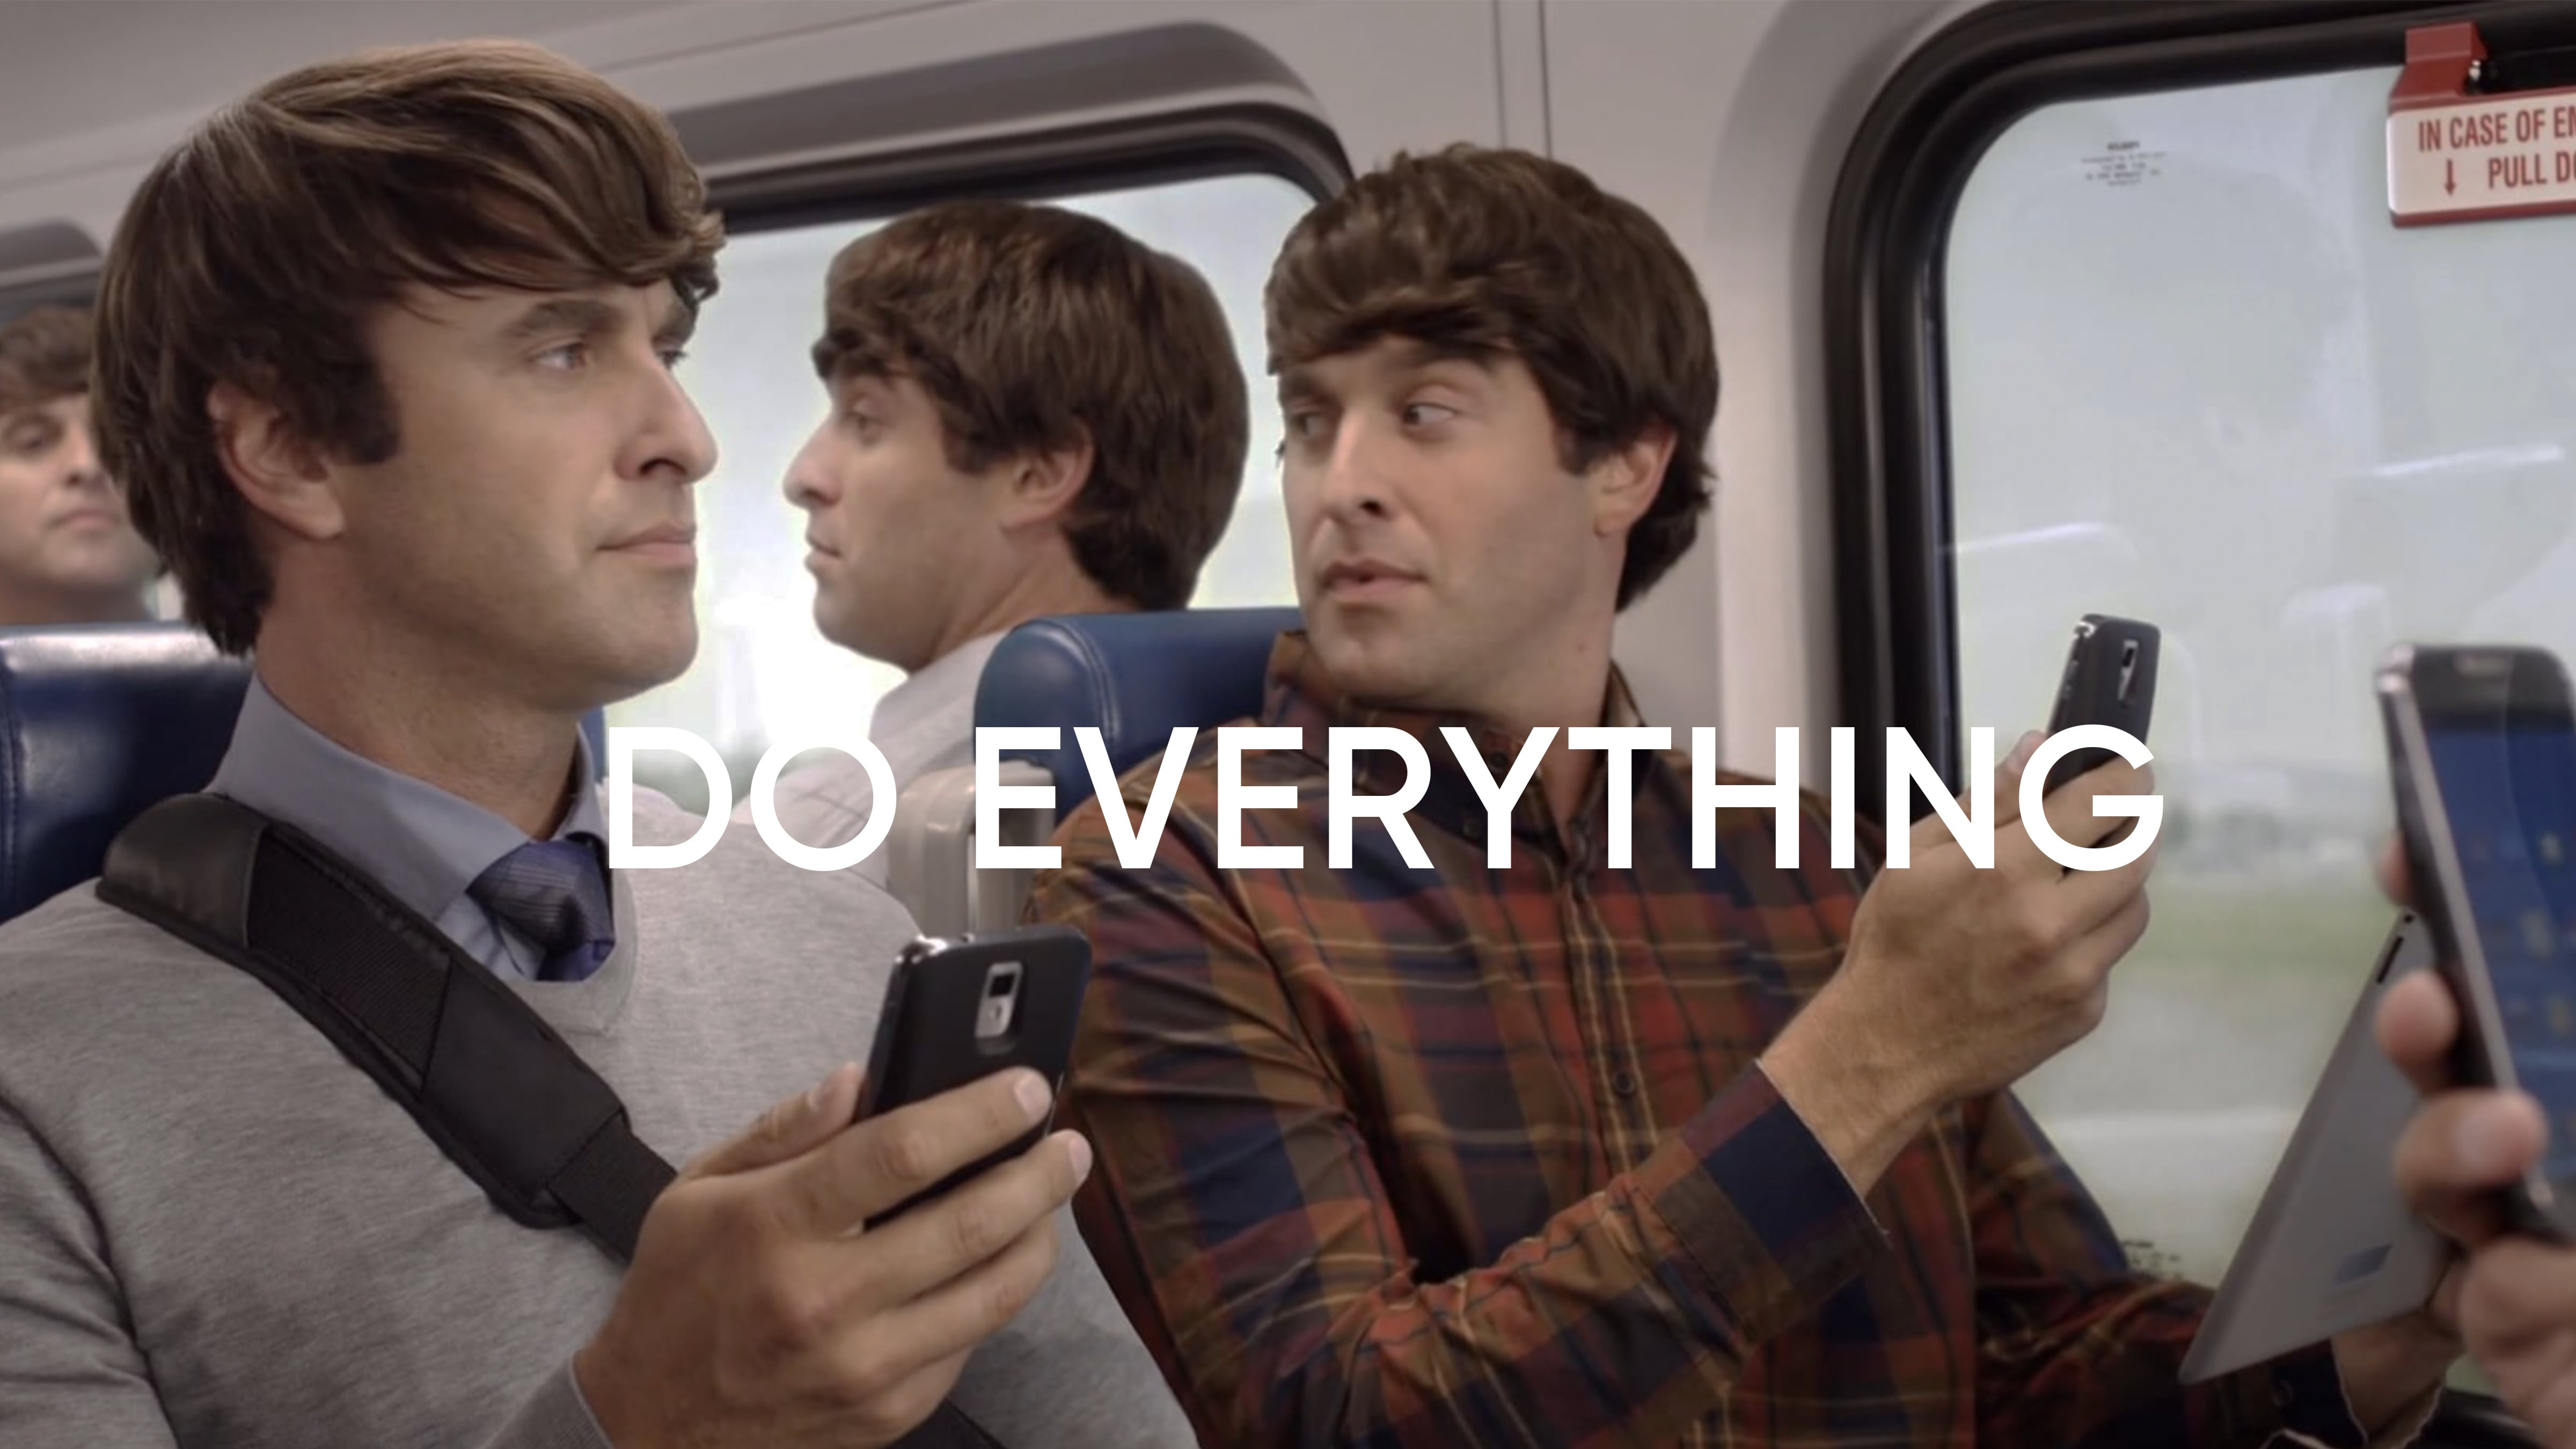 """This UTA commercial """"Do Everything"""" features a man getting on a UTA train to find clones of himself in each seat, all dressed differently and doing different activities."""